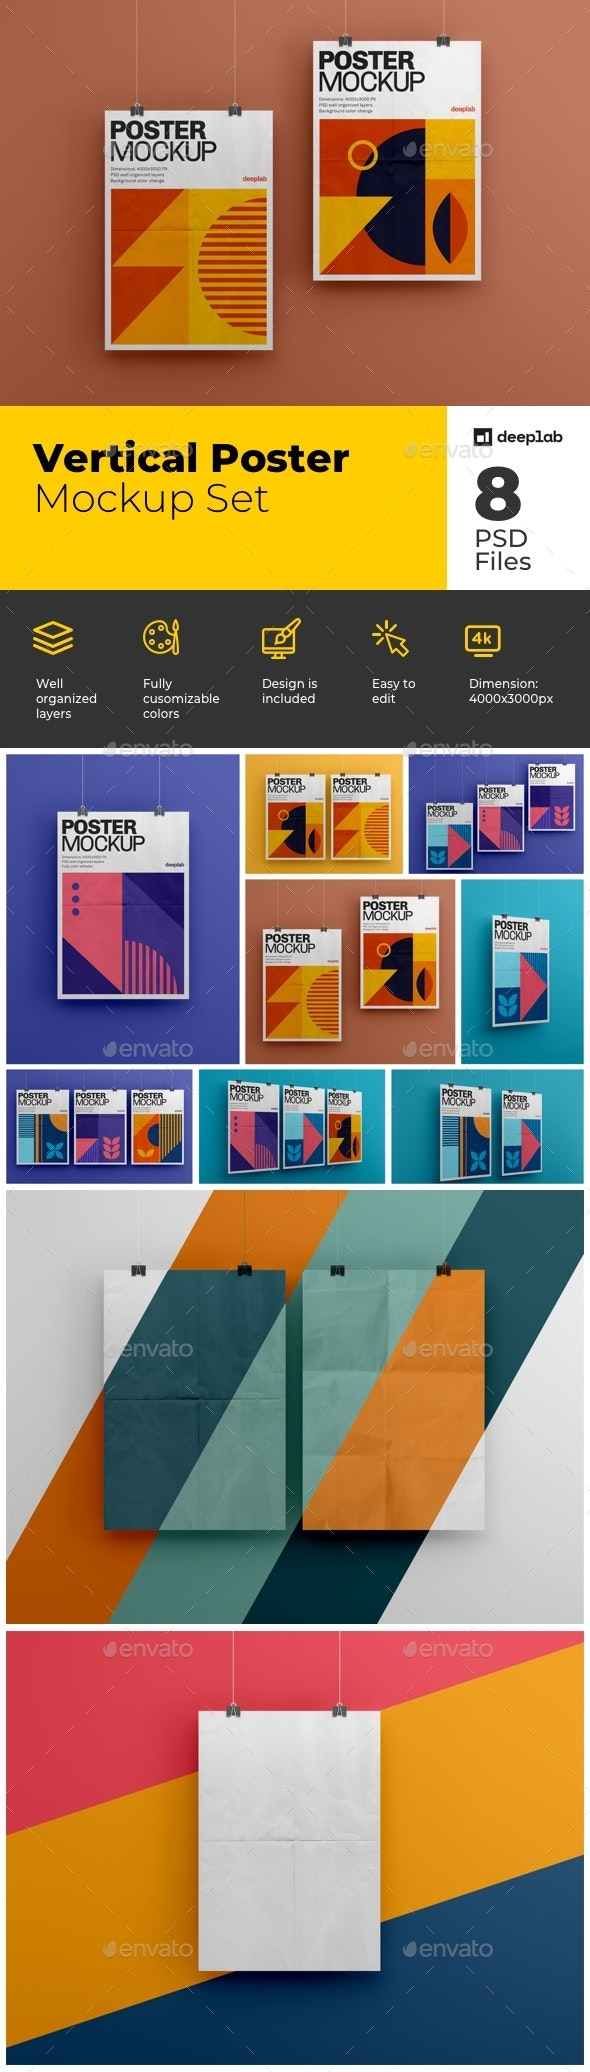 Vertical Poster Mockup Set - Product Mock-Ups Graphics